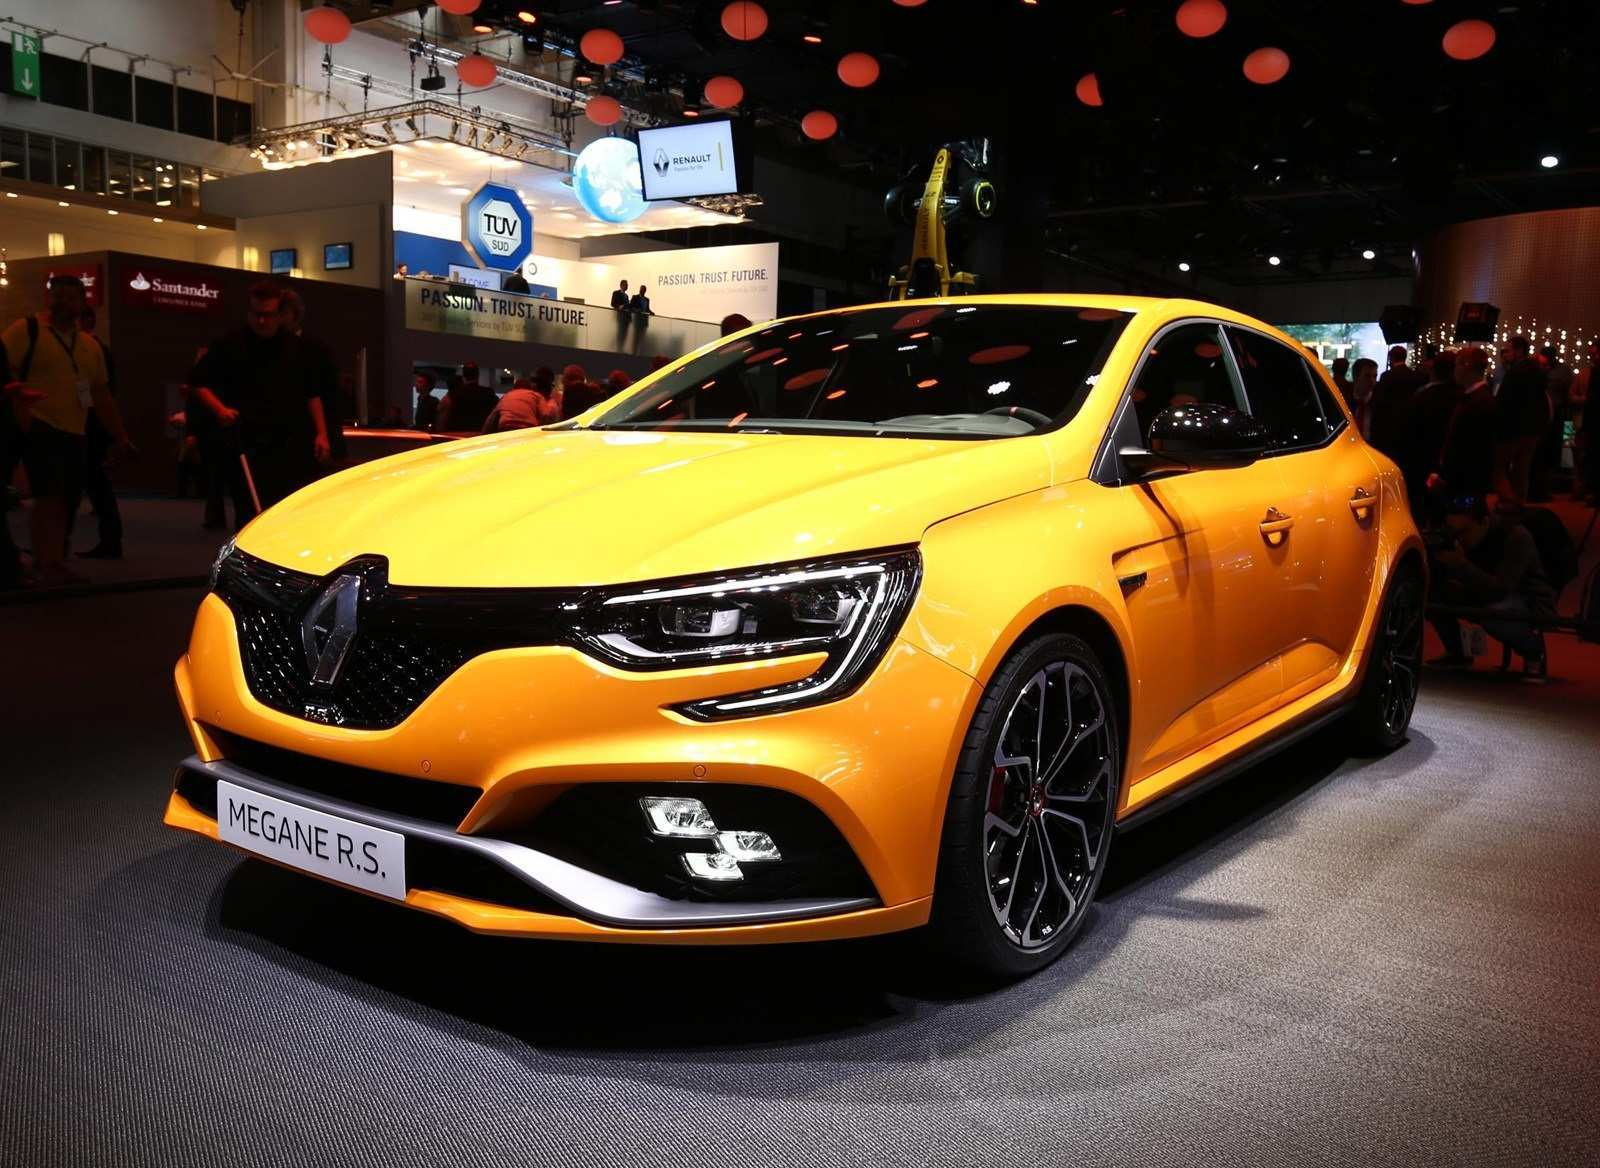 23 New 2020 Renault Megane SUV Redesign and Concept with 2020 Renault Megane SUV